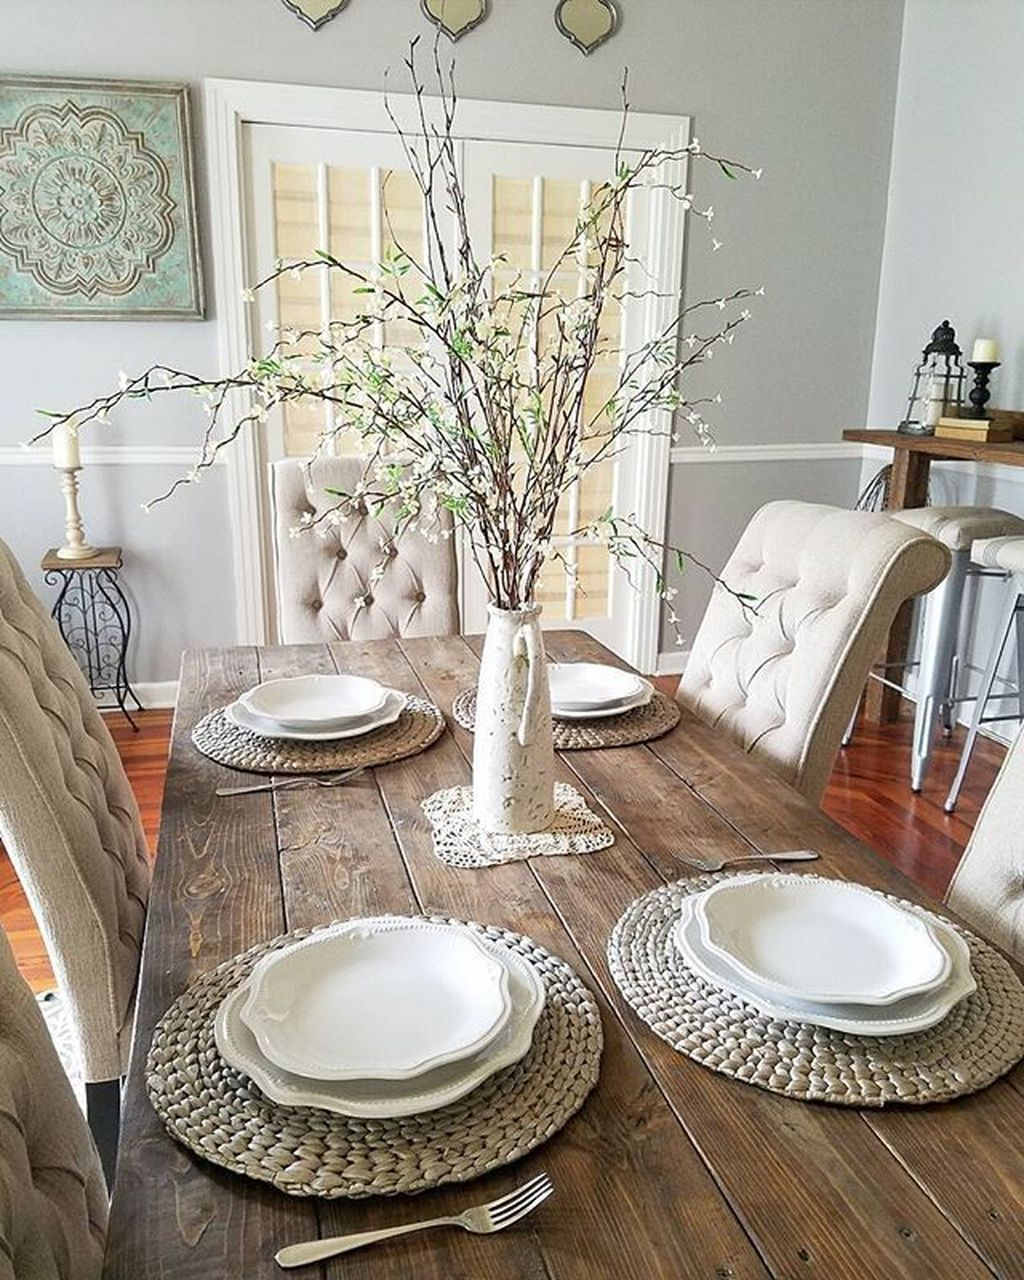 Cool 49 Awesome Modern Farmhouse Dining Room Design Ideas More At Https H Farmhouse Dining Room Table Dining Room Table Centerpieces Dining Room Table Decor